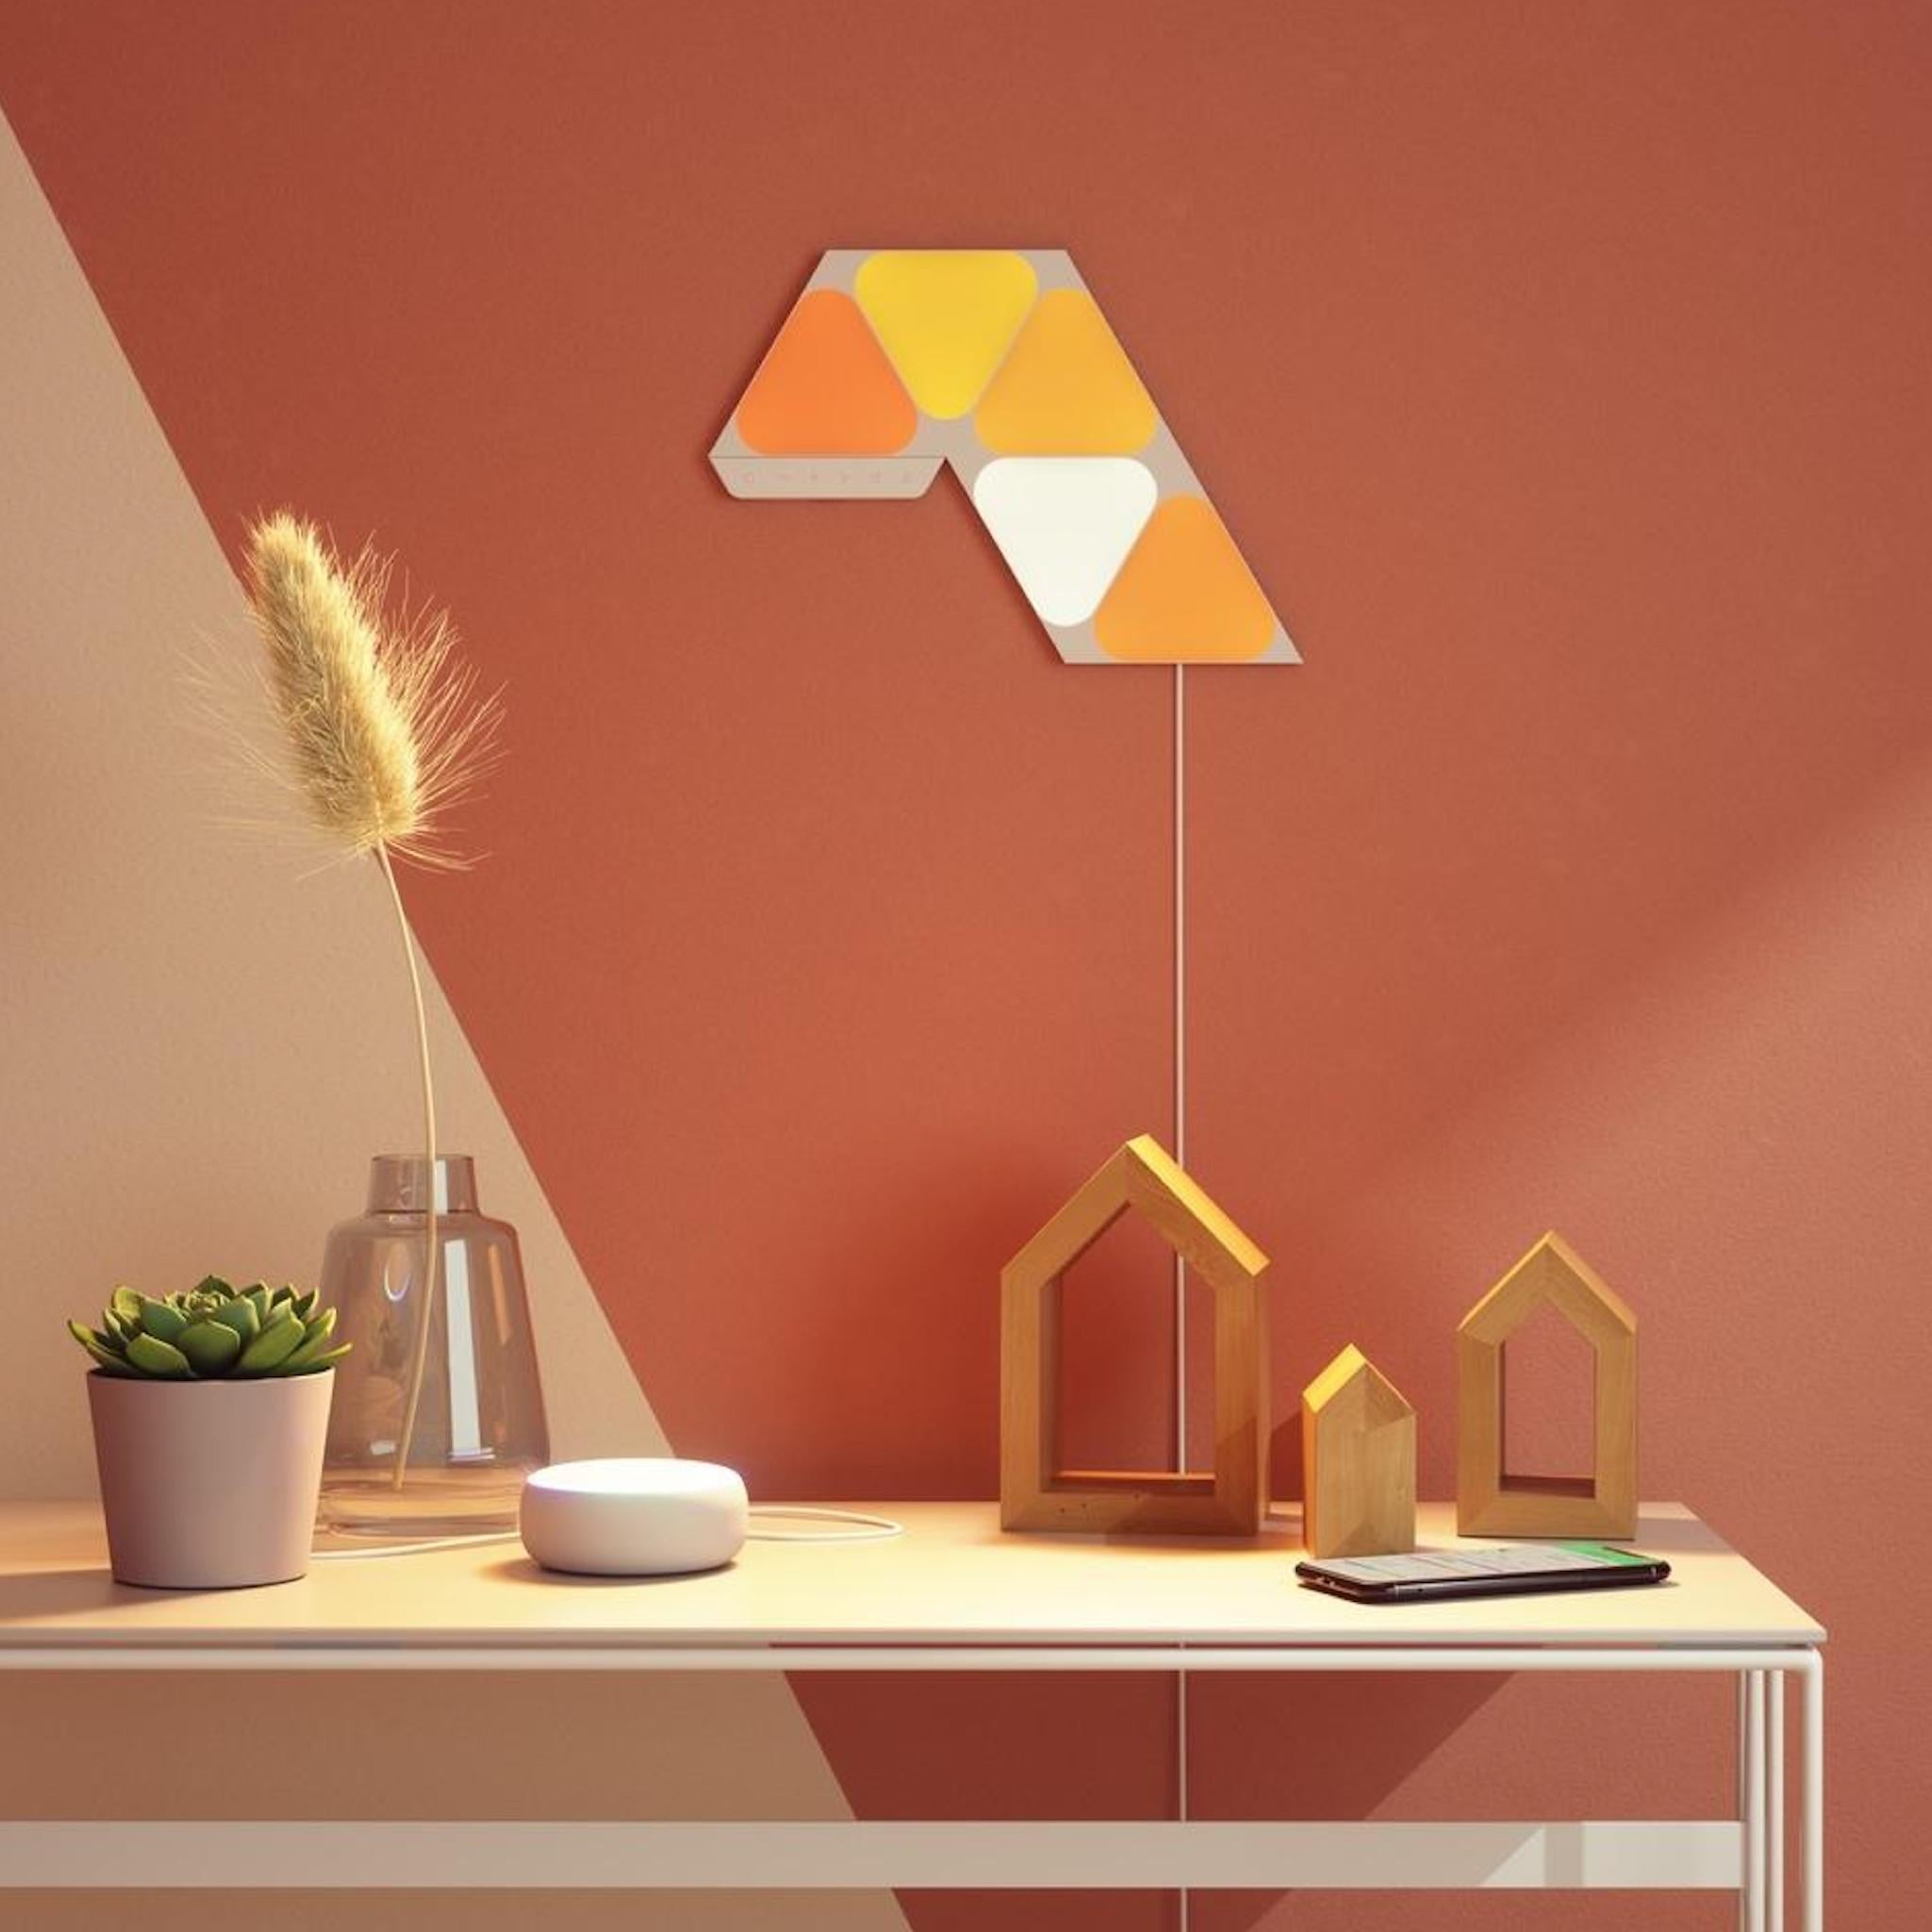 Nanoleaf Shapes Mini Triangle Starter Kit - 5 Panels